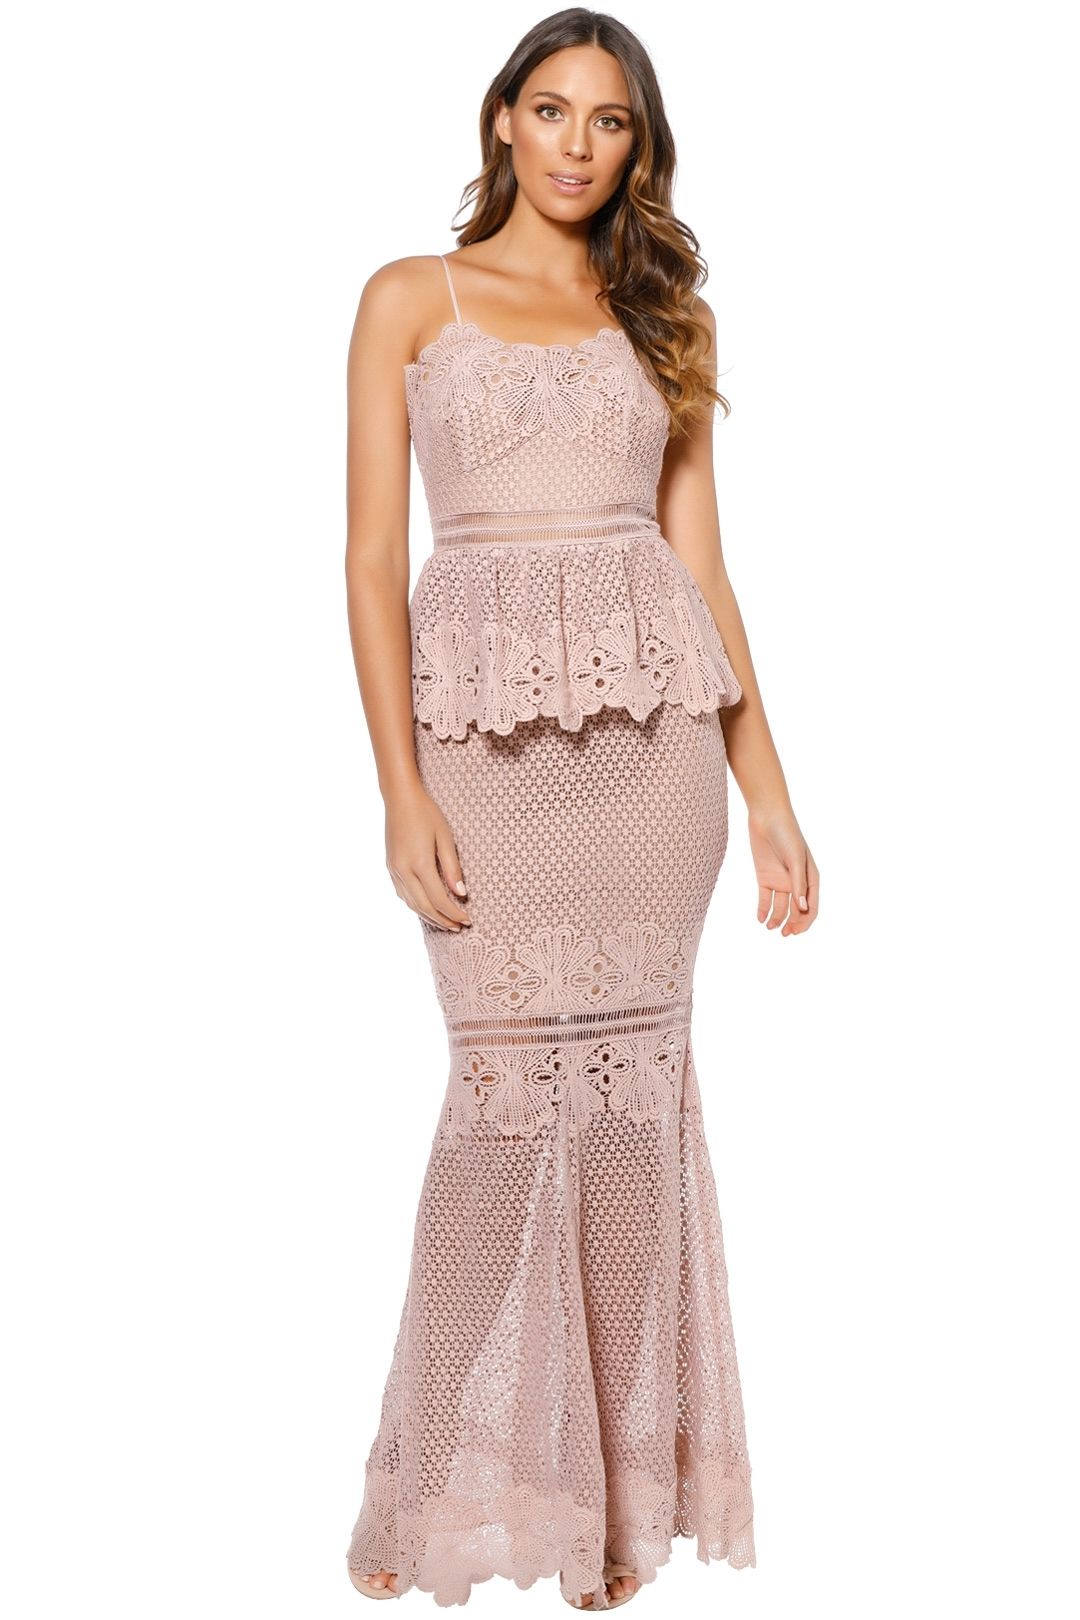 Grace and Hart - Frilling Around Gown - Nude - Front